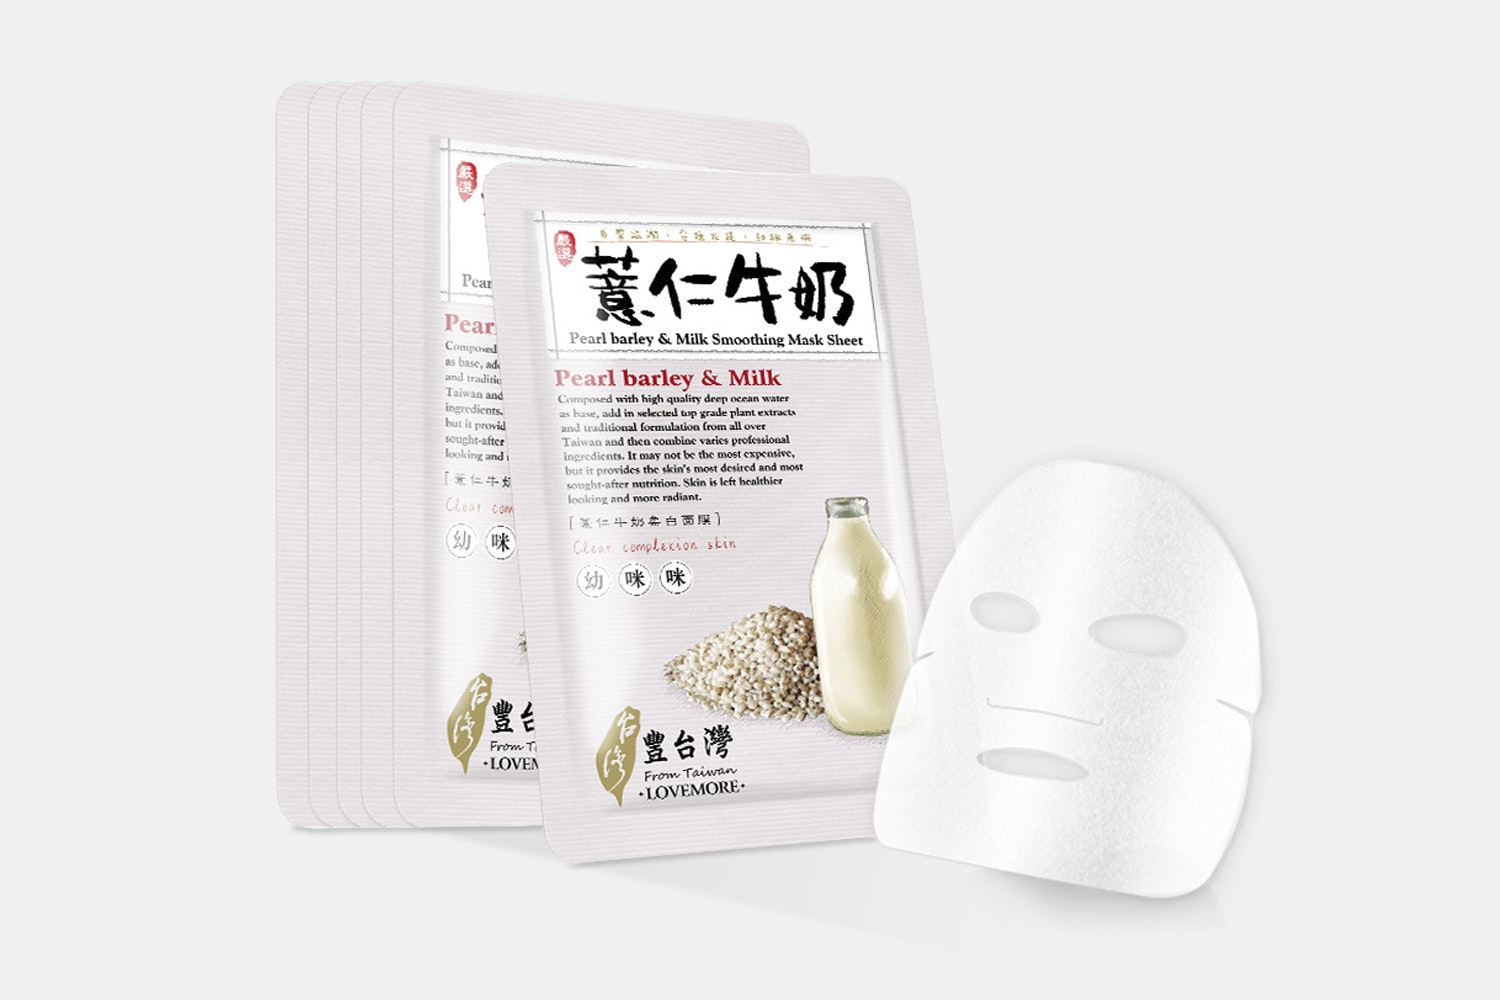 Lovemore Pearl Barley & Milk Smoothing Masks (5pcs)